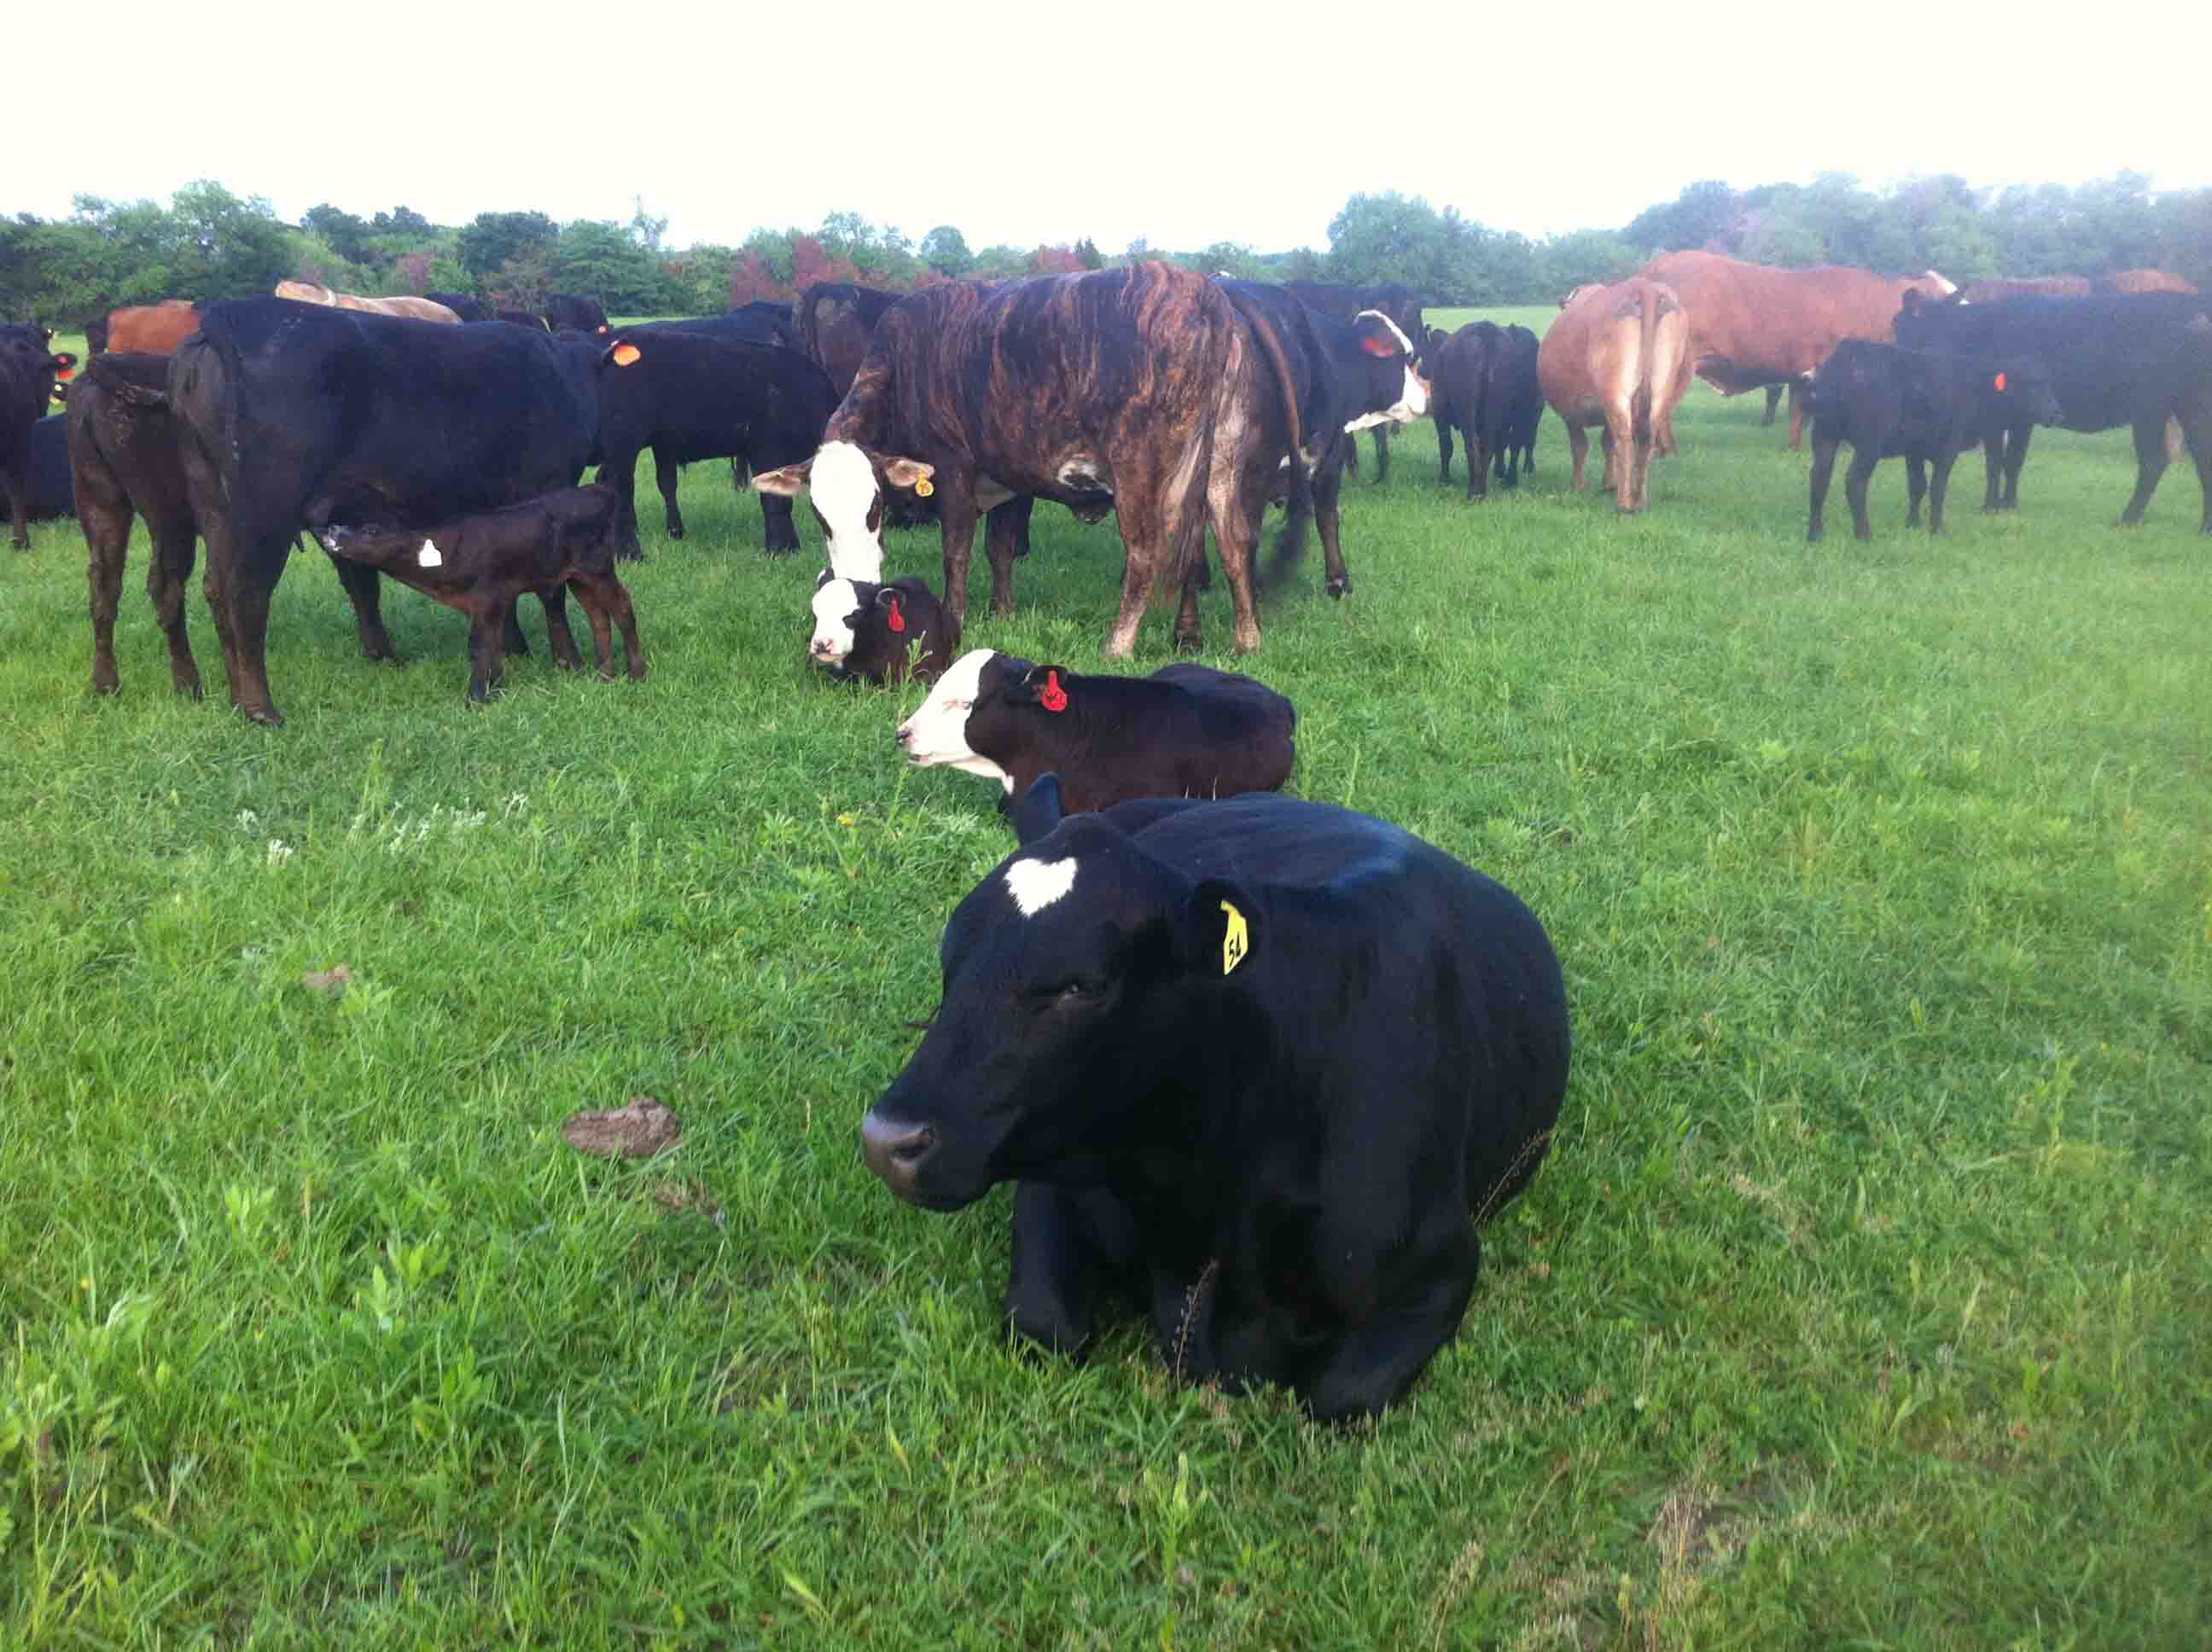 The+Kelly+family+keeps+dozens+of+cows+on+the+farm%2C+where+they+raise+and+sell+cows+for+beef.